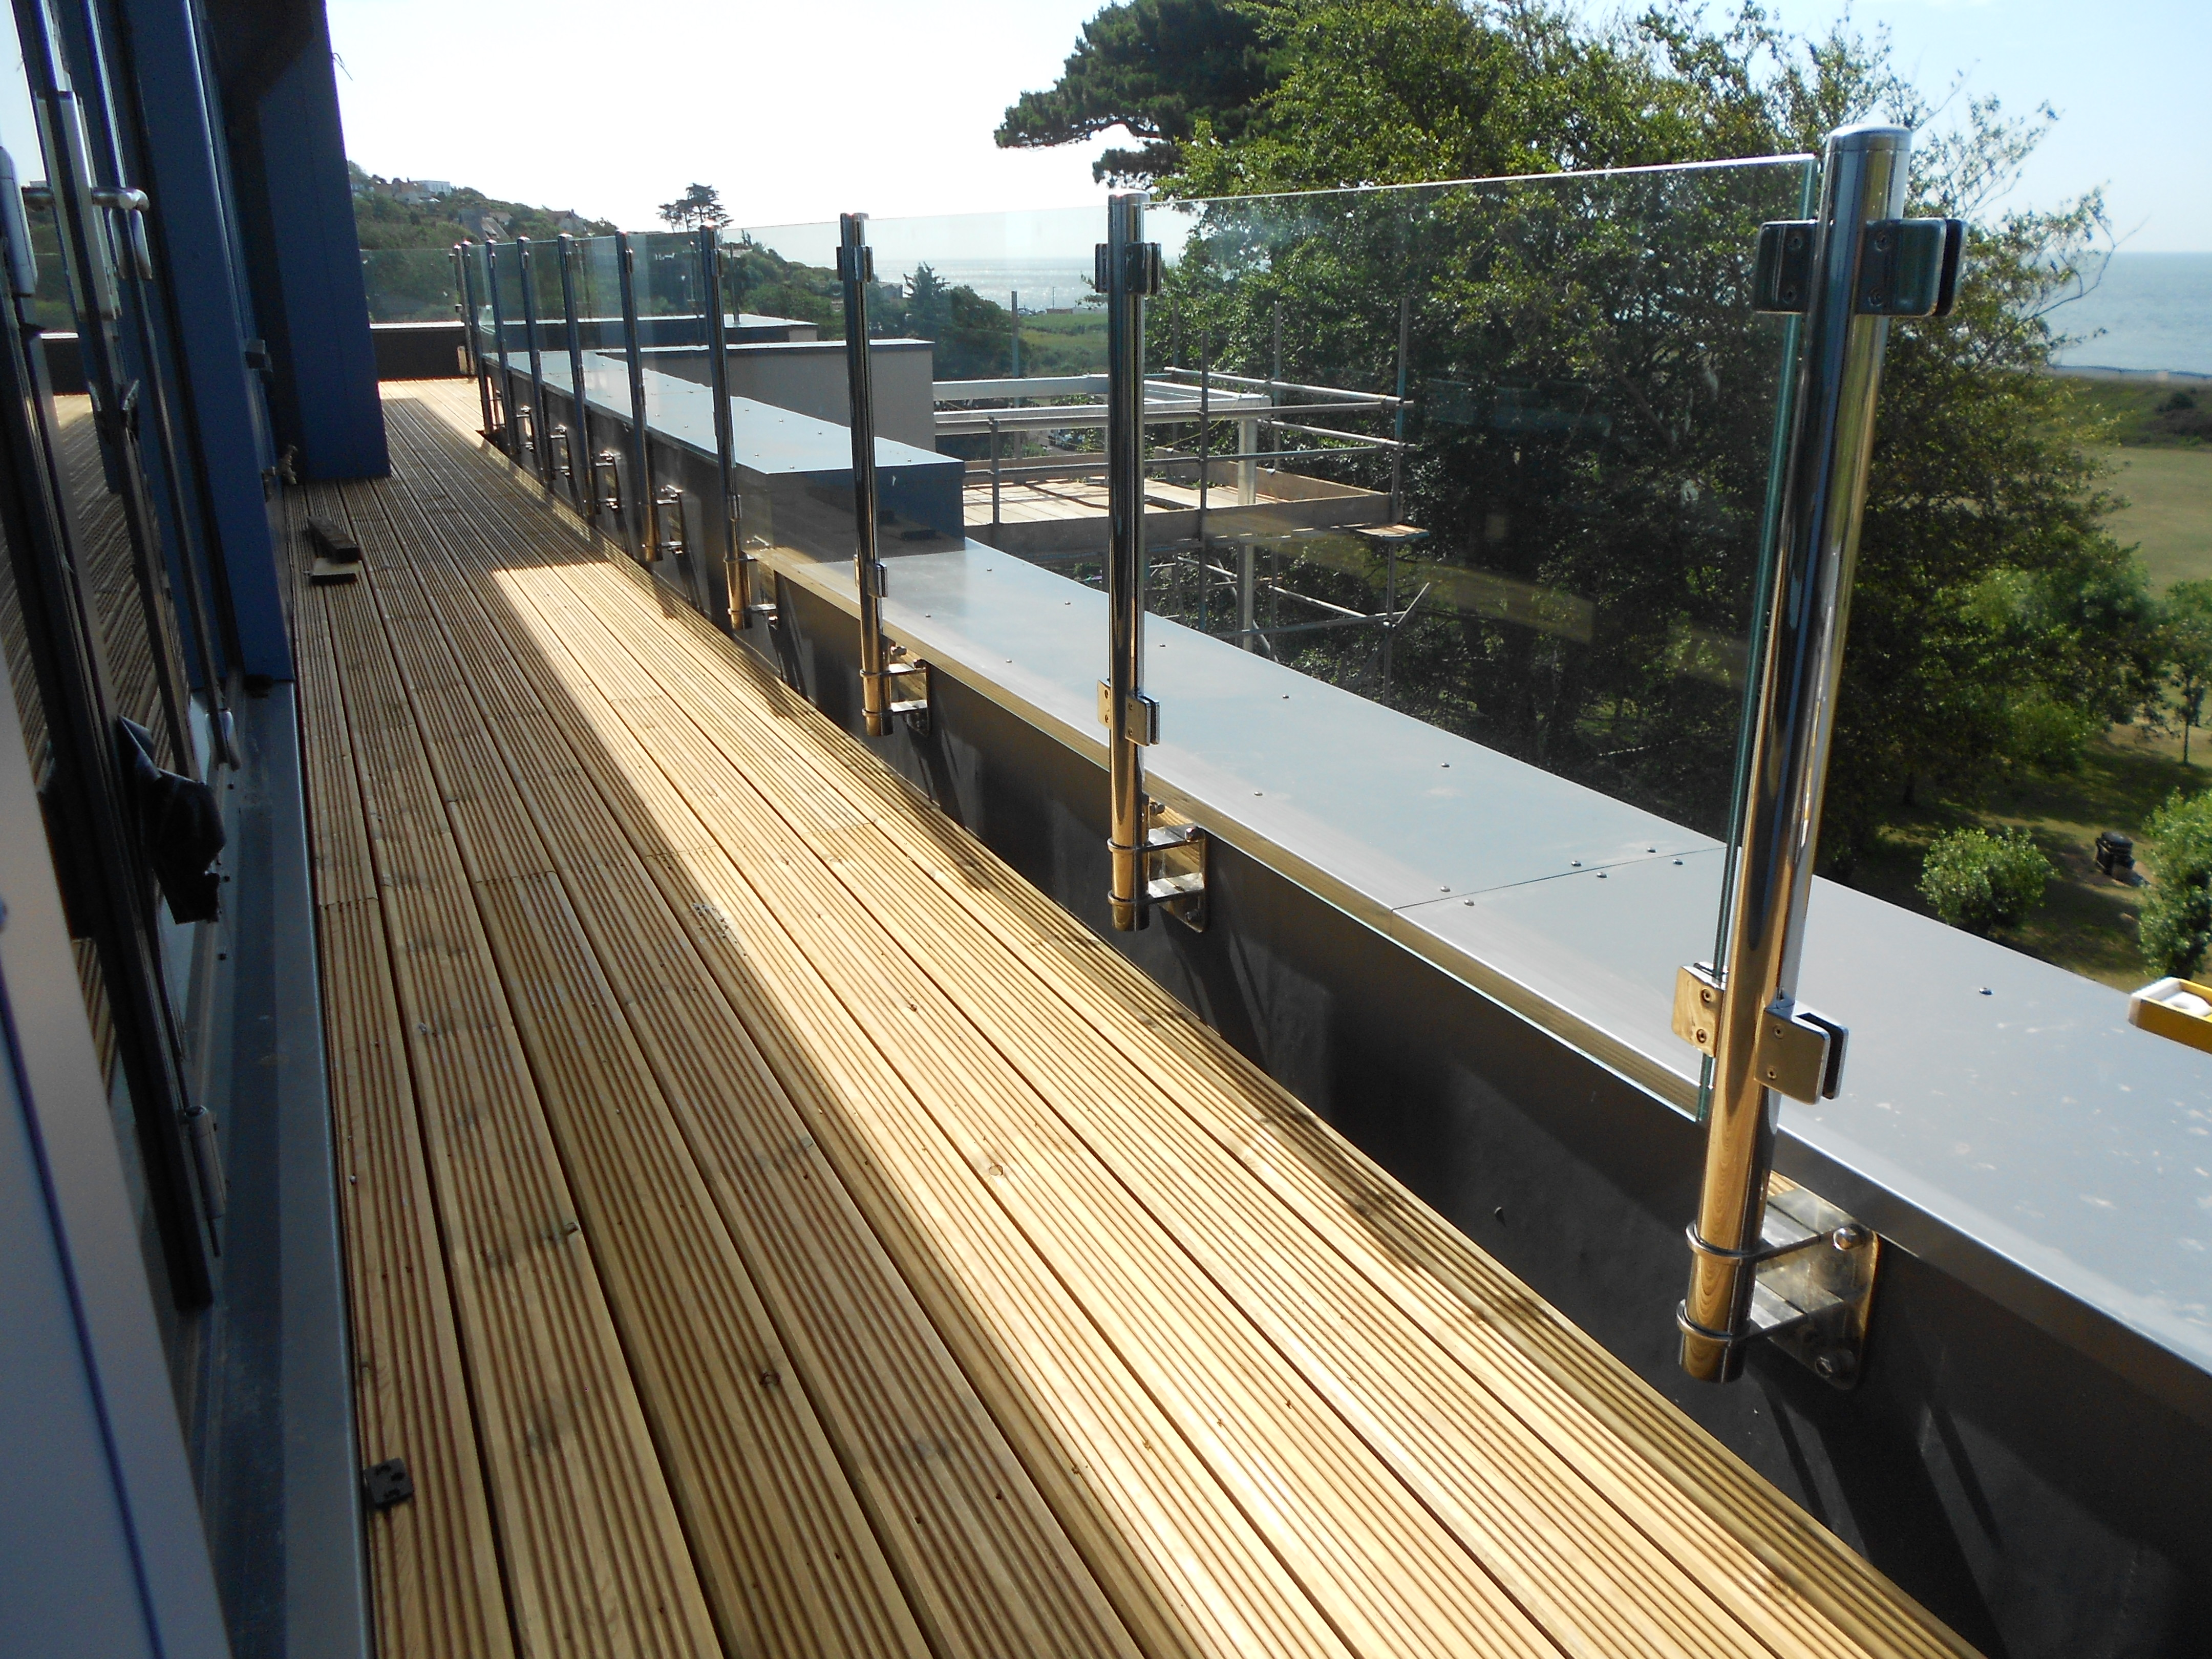 Stainless Steel Posts & Glass Balustrade